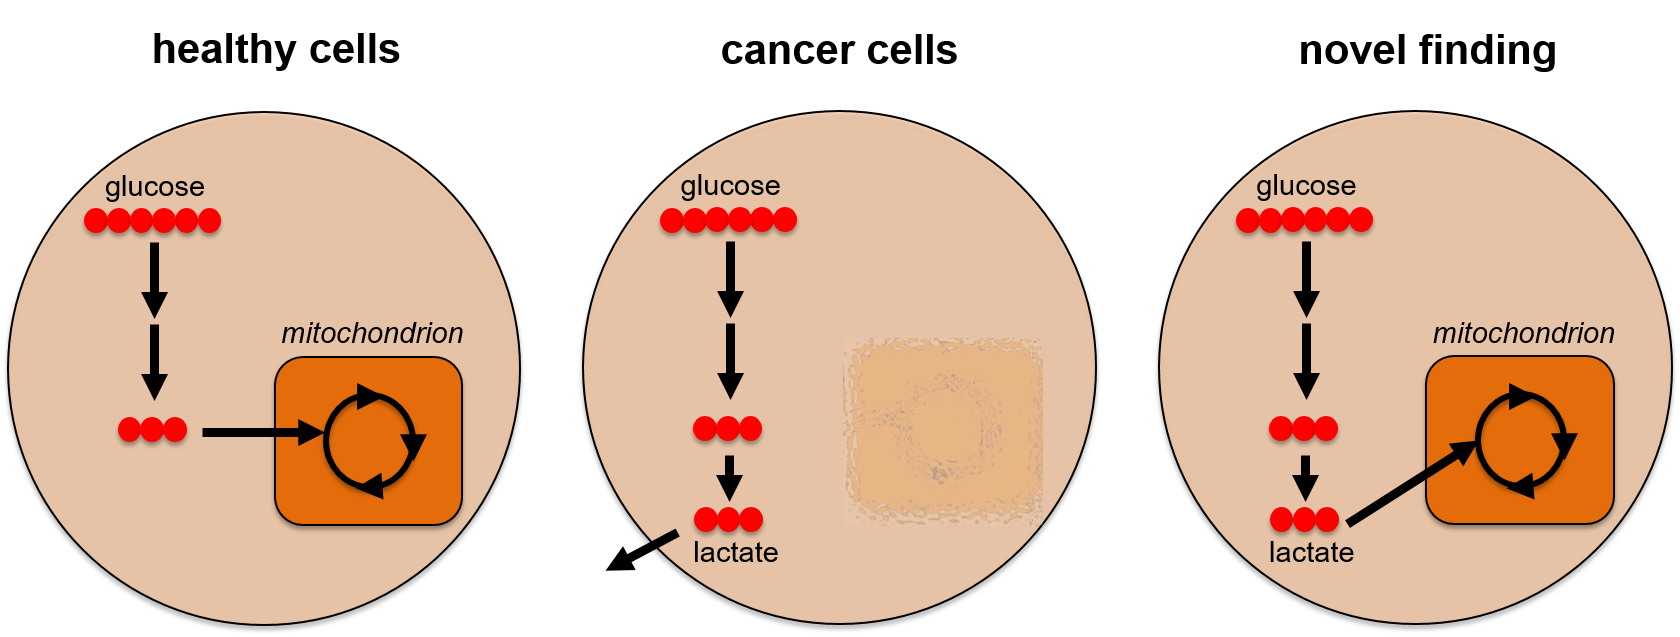 Glucose is metabolized to lactate in most cancer cells